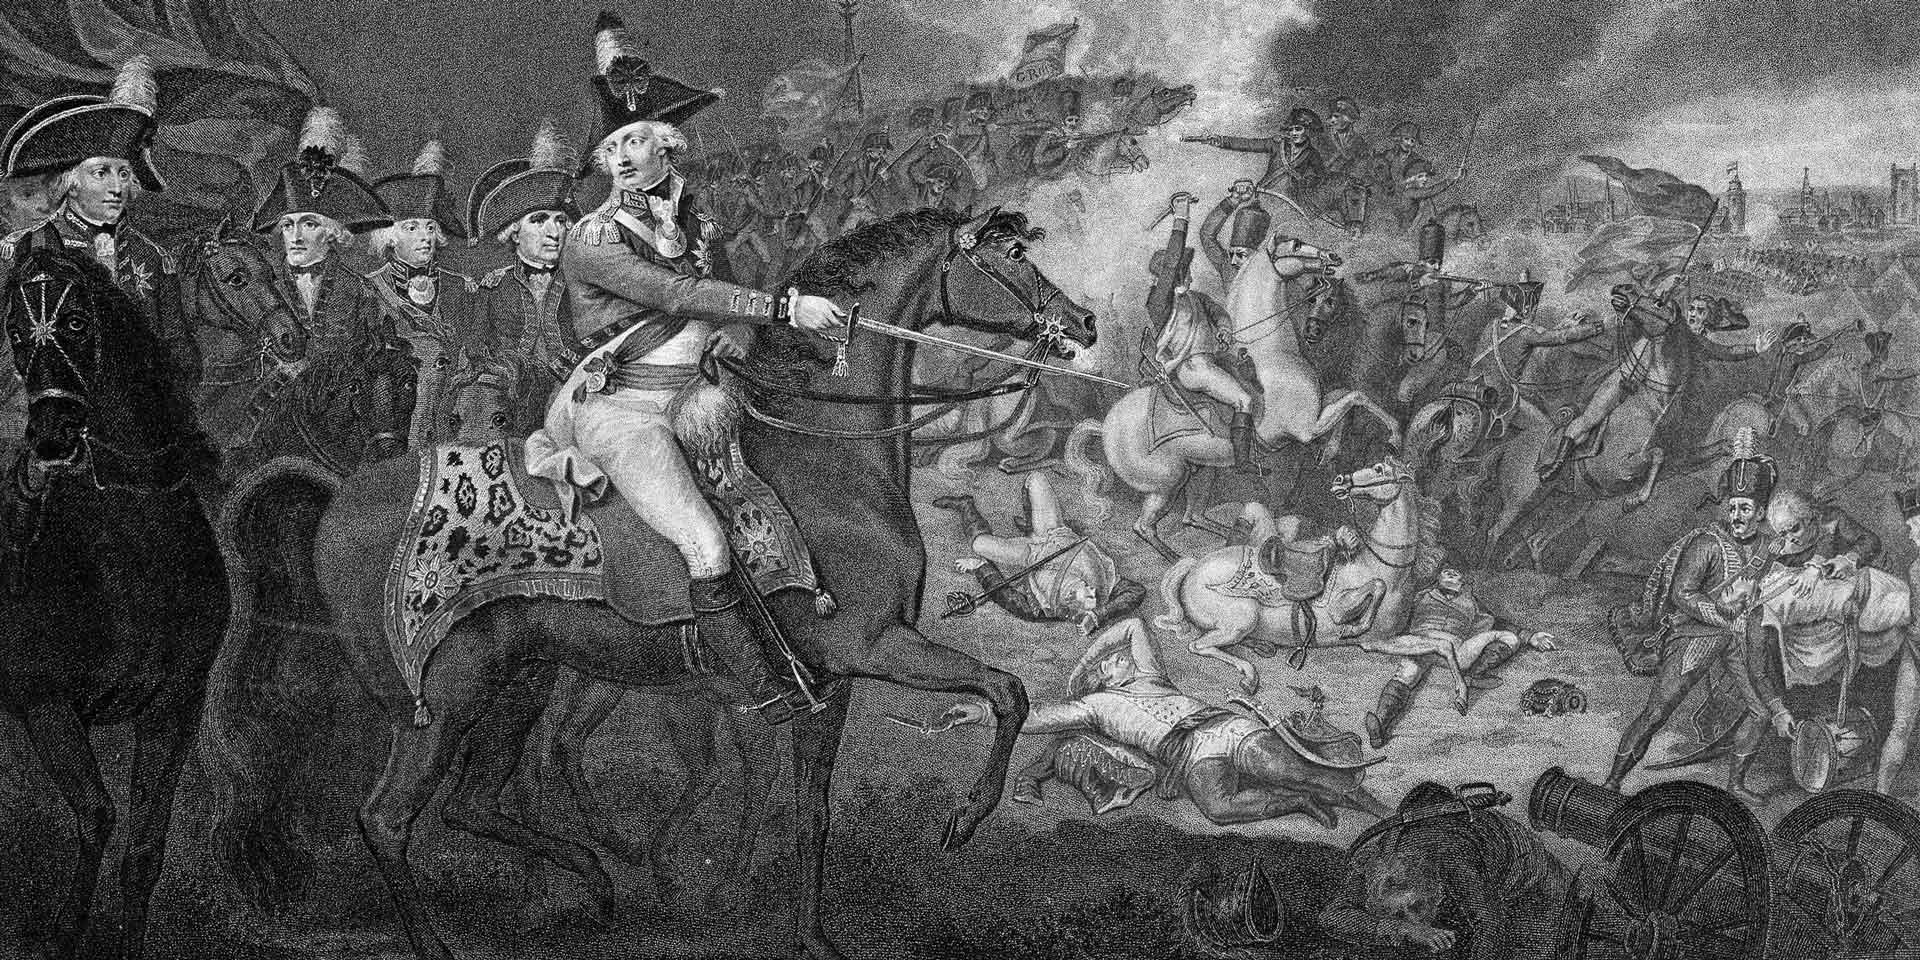 The Battle of Valenciennes, 1793